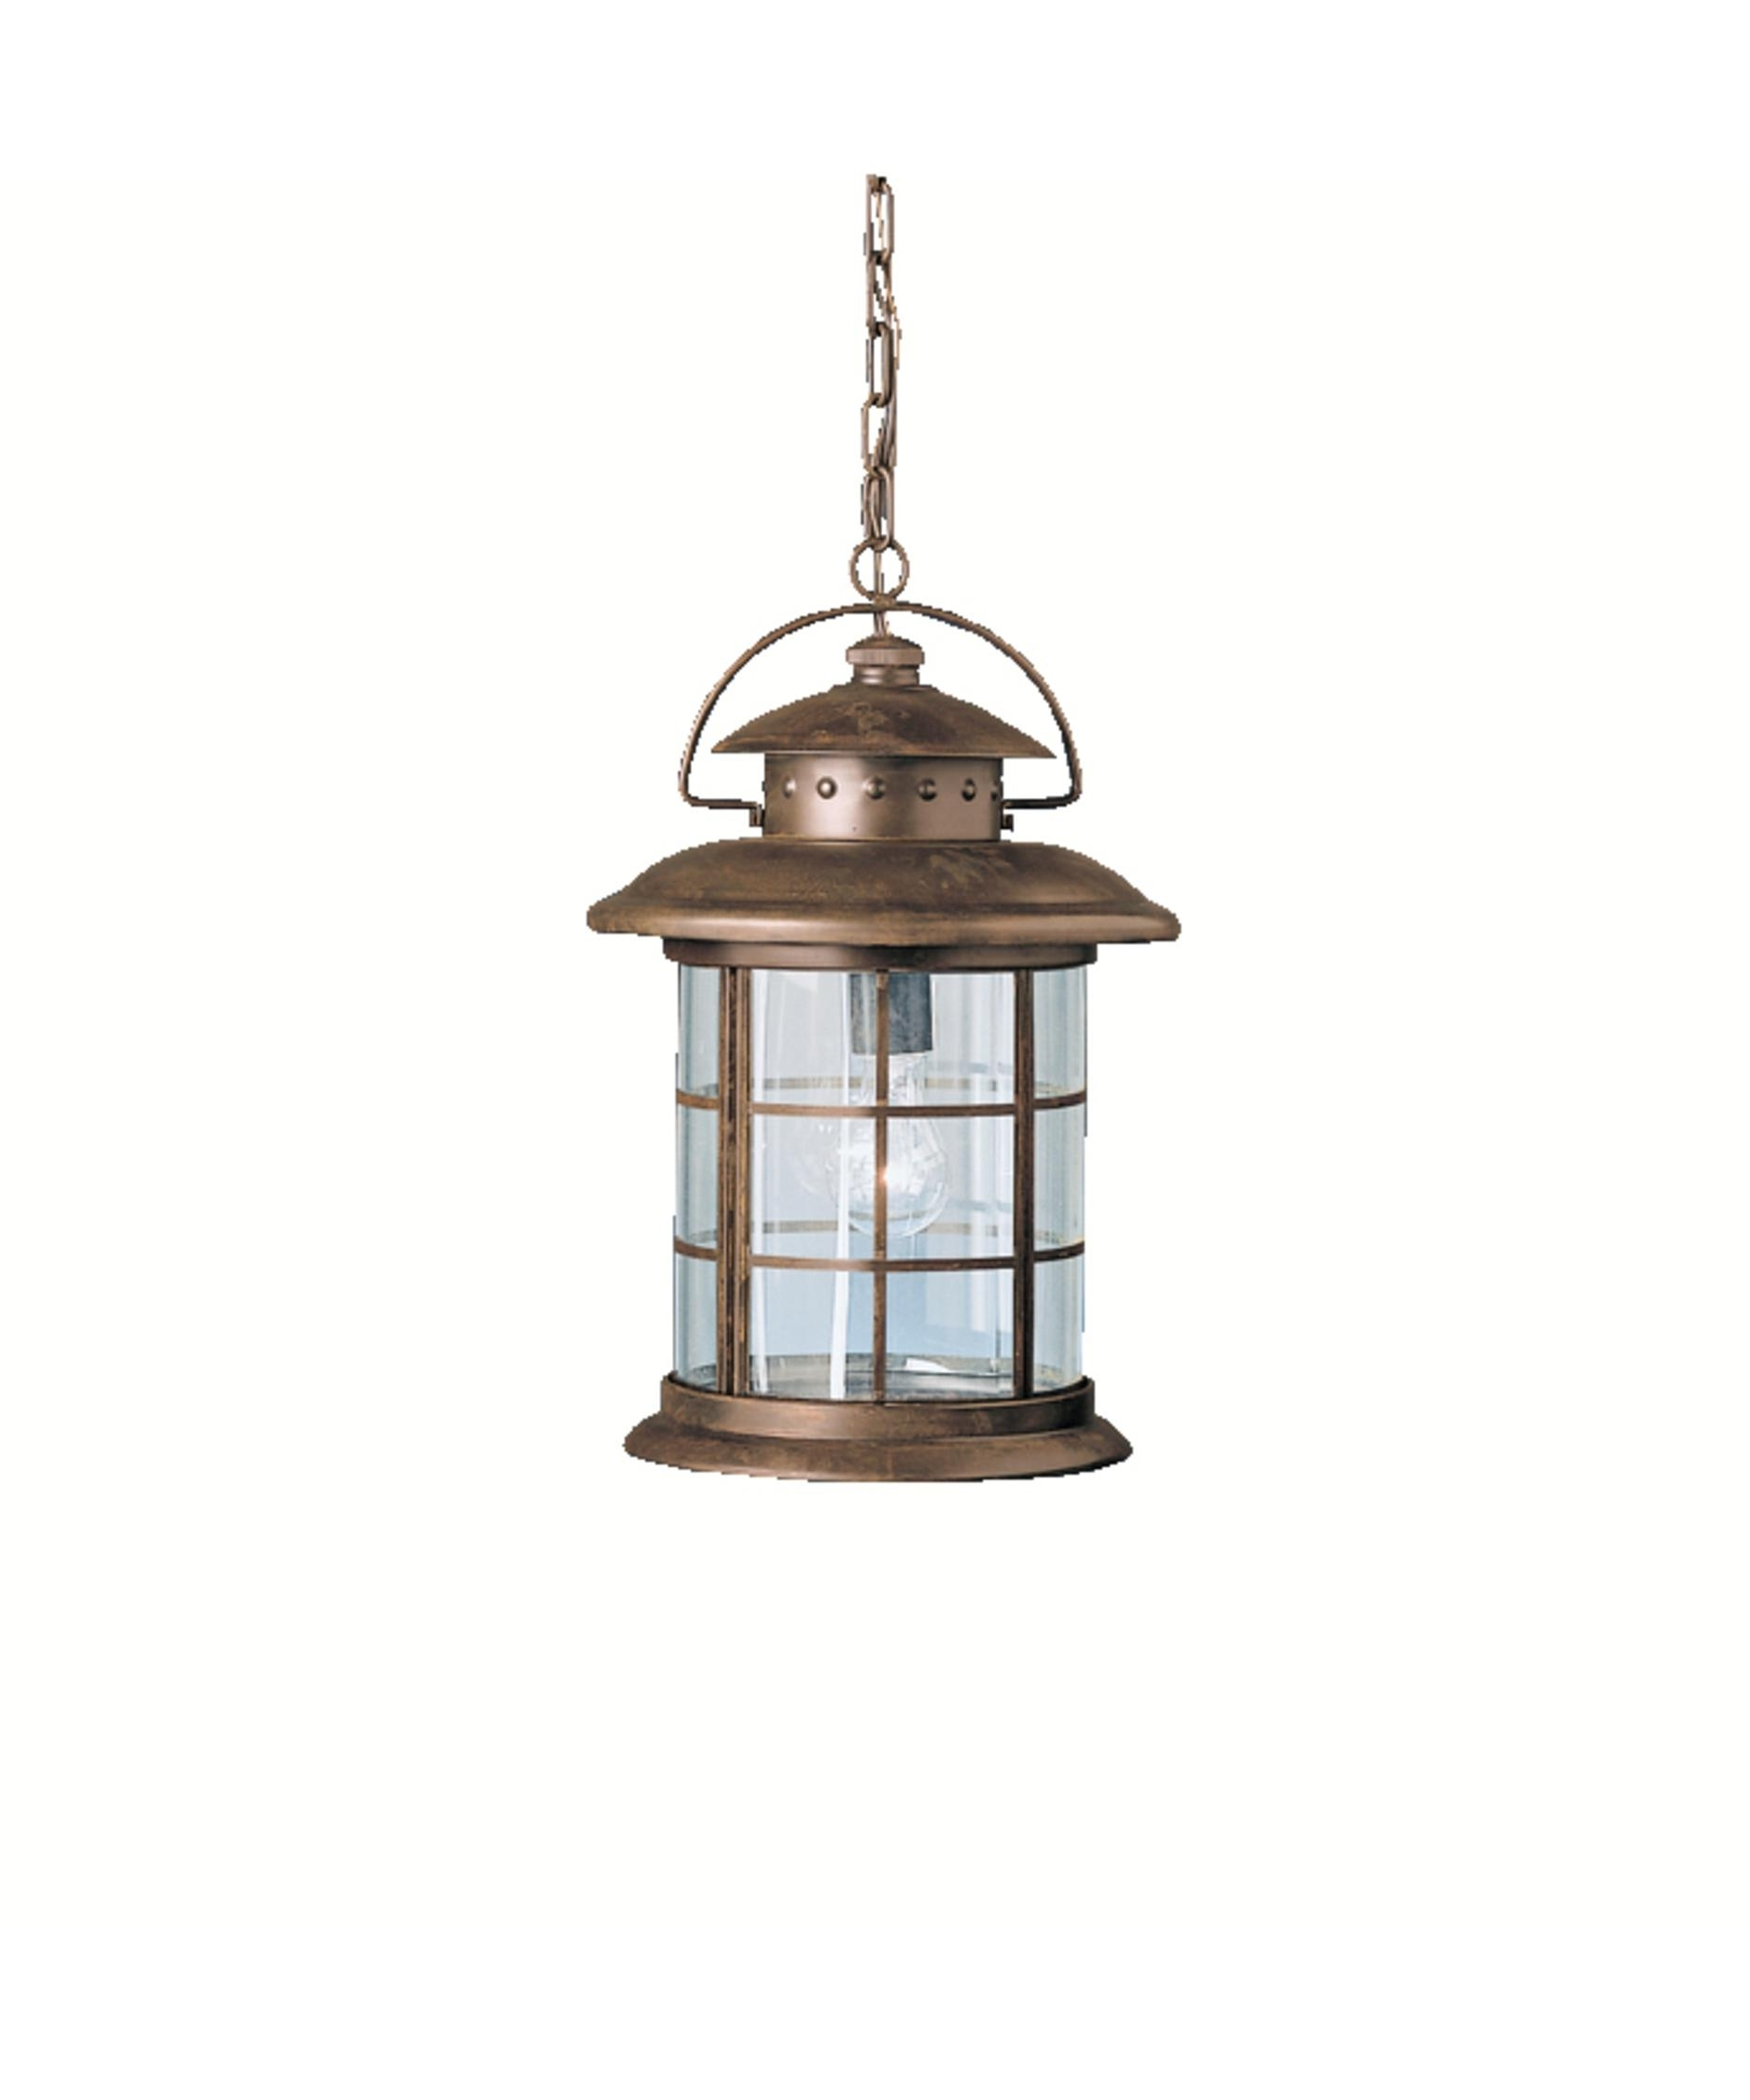 Newest Kichler 9870 Rustic 11 Inch Wide 1 Light Outdoor Hanging Lantern Pertaining To Kichler Outdoor Ceiling Lights (Gallery 7 of 20)